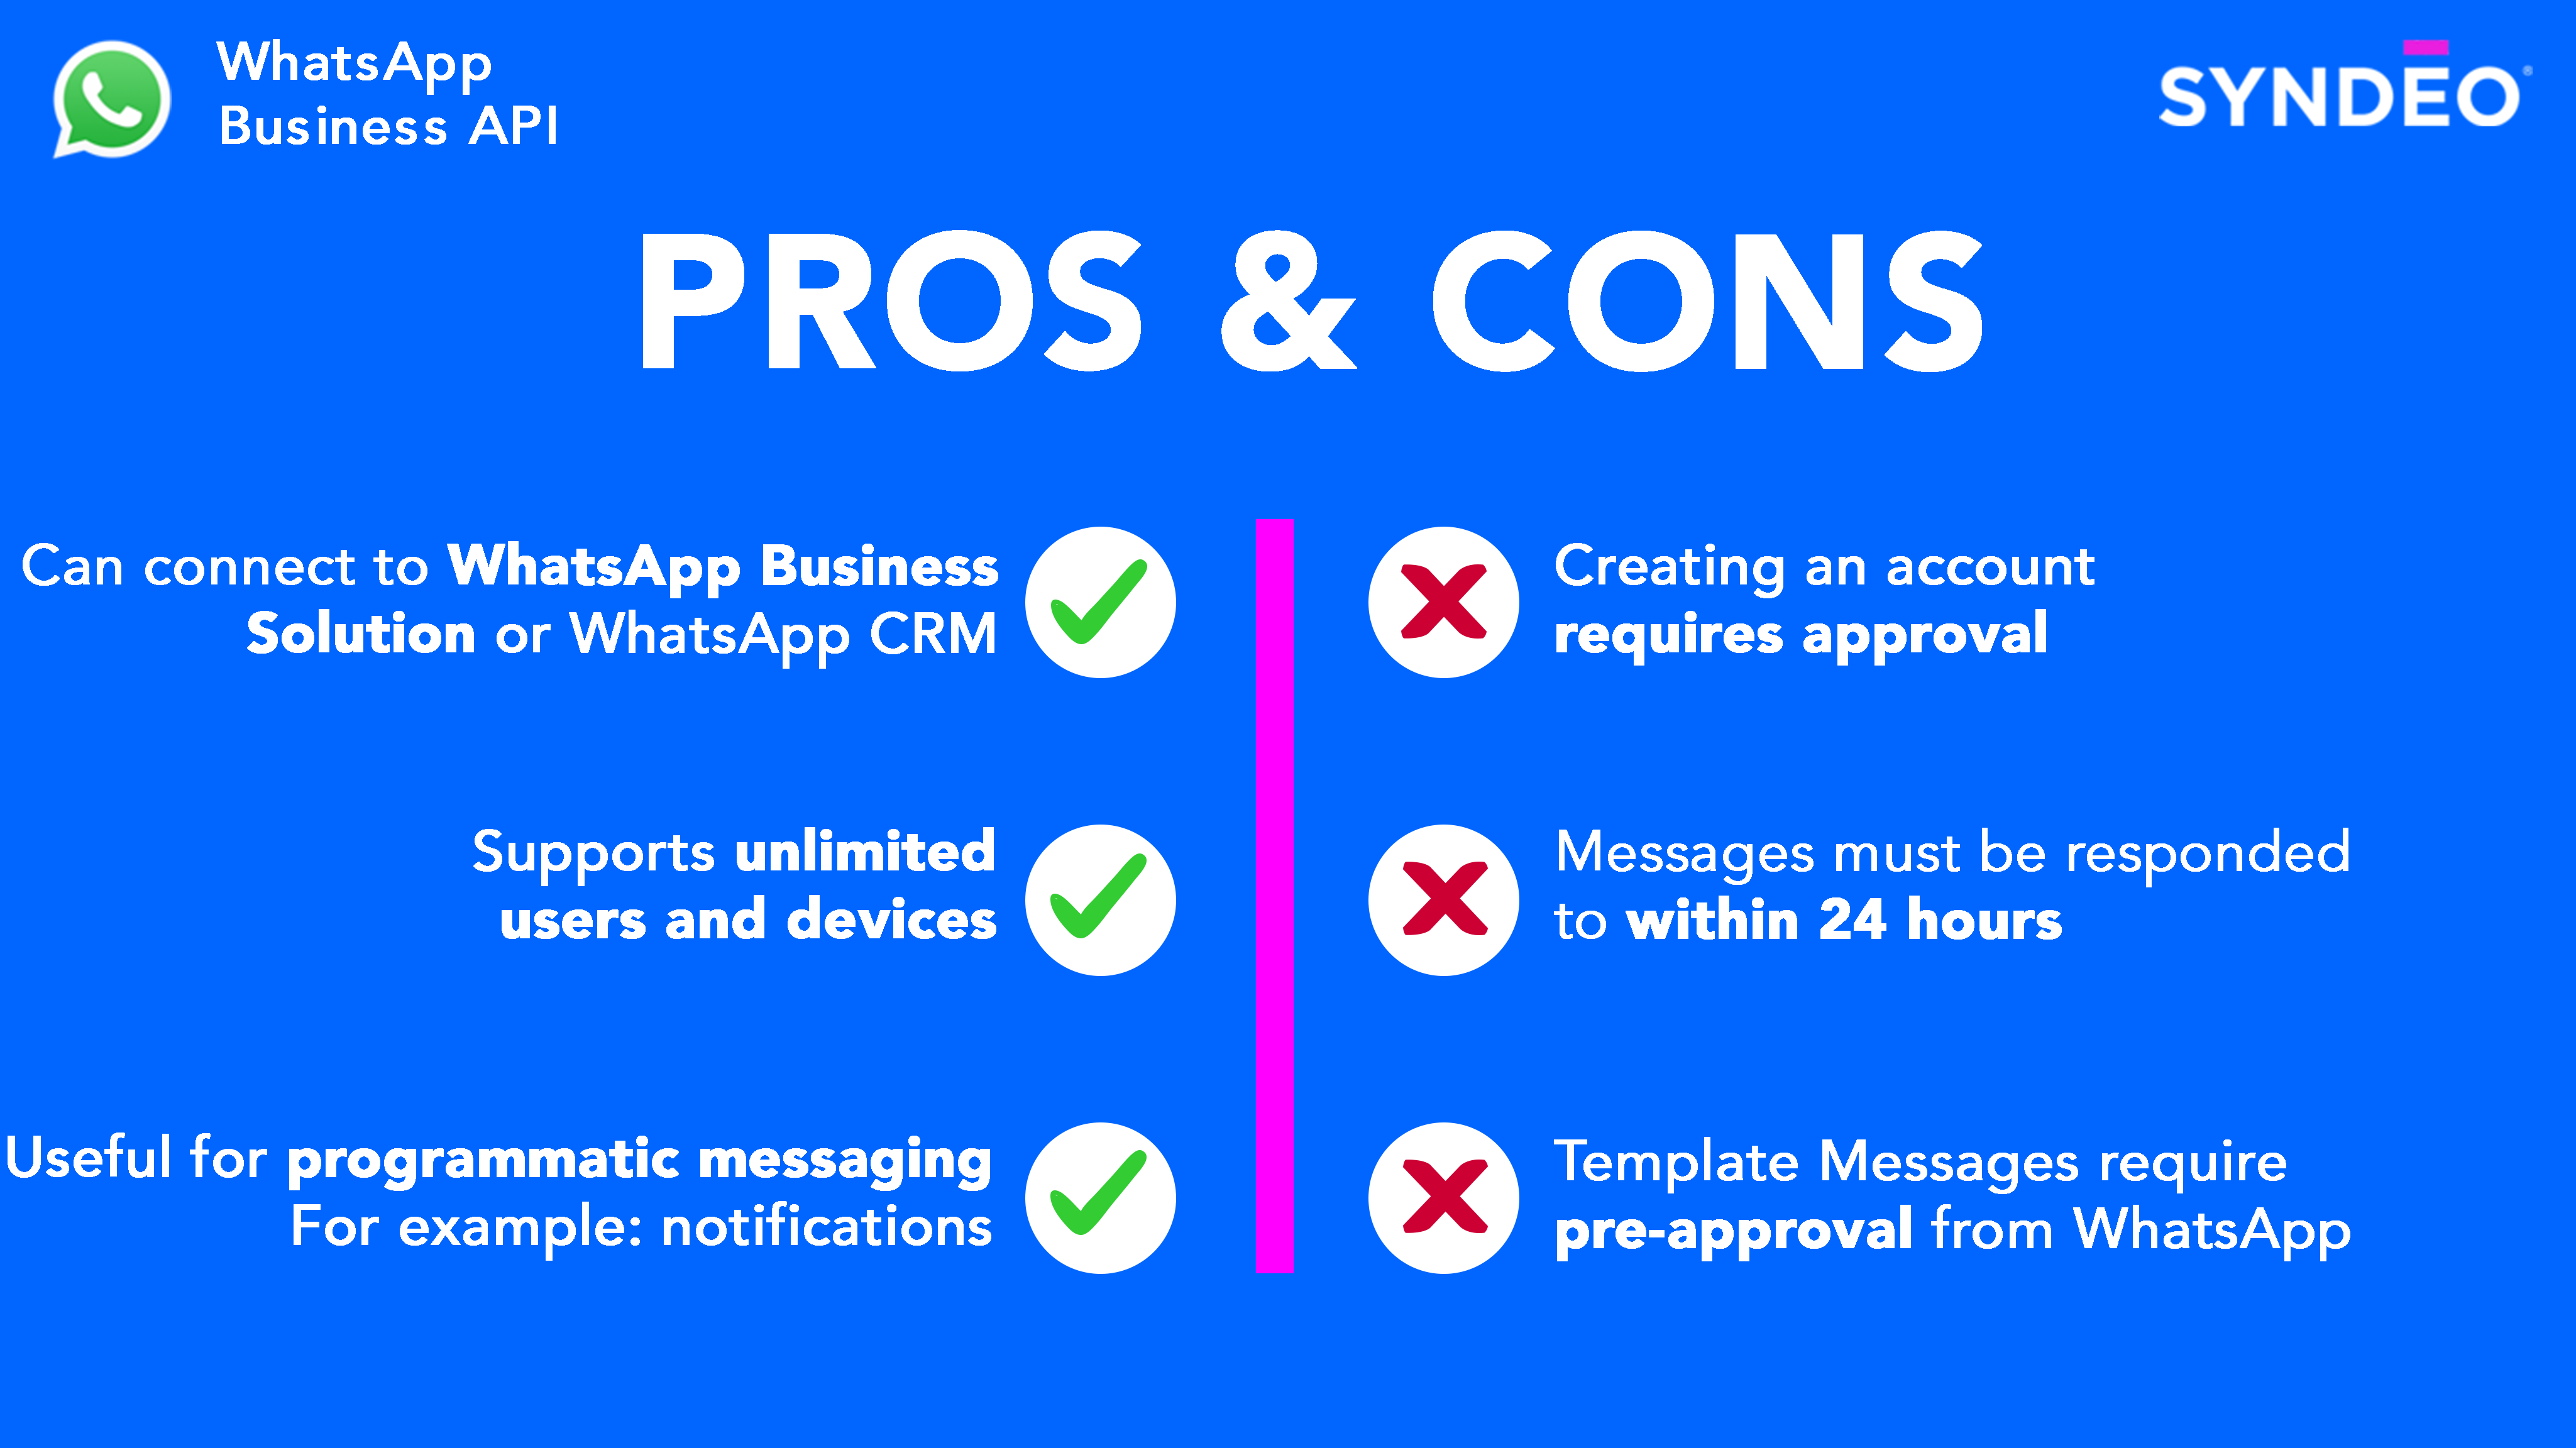 WhatsApp Pros and Cons #2